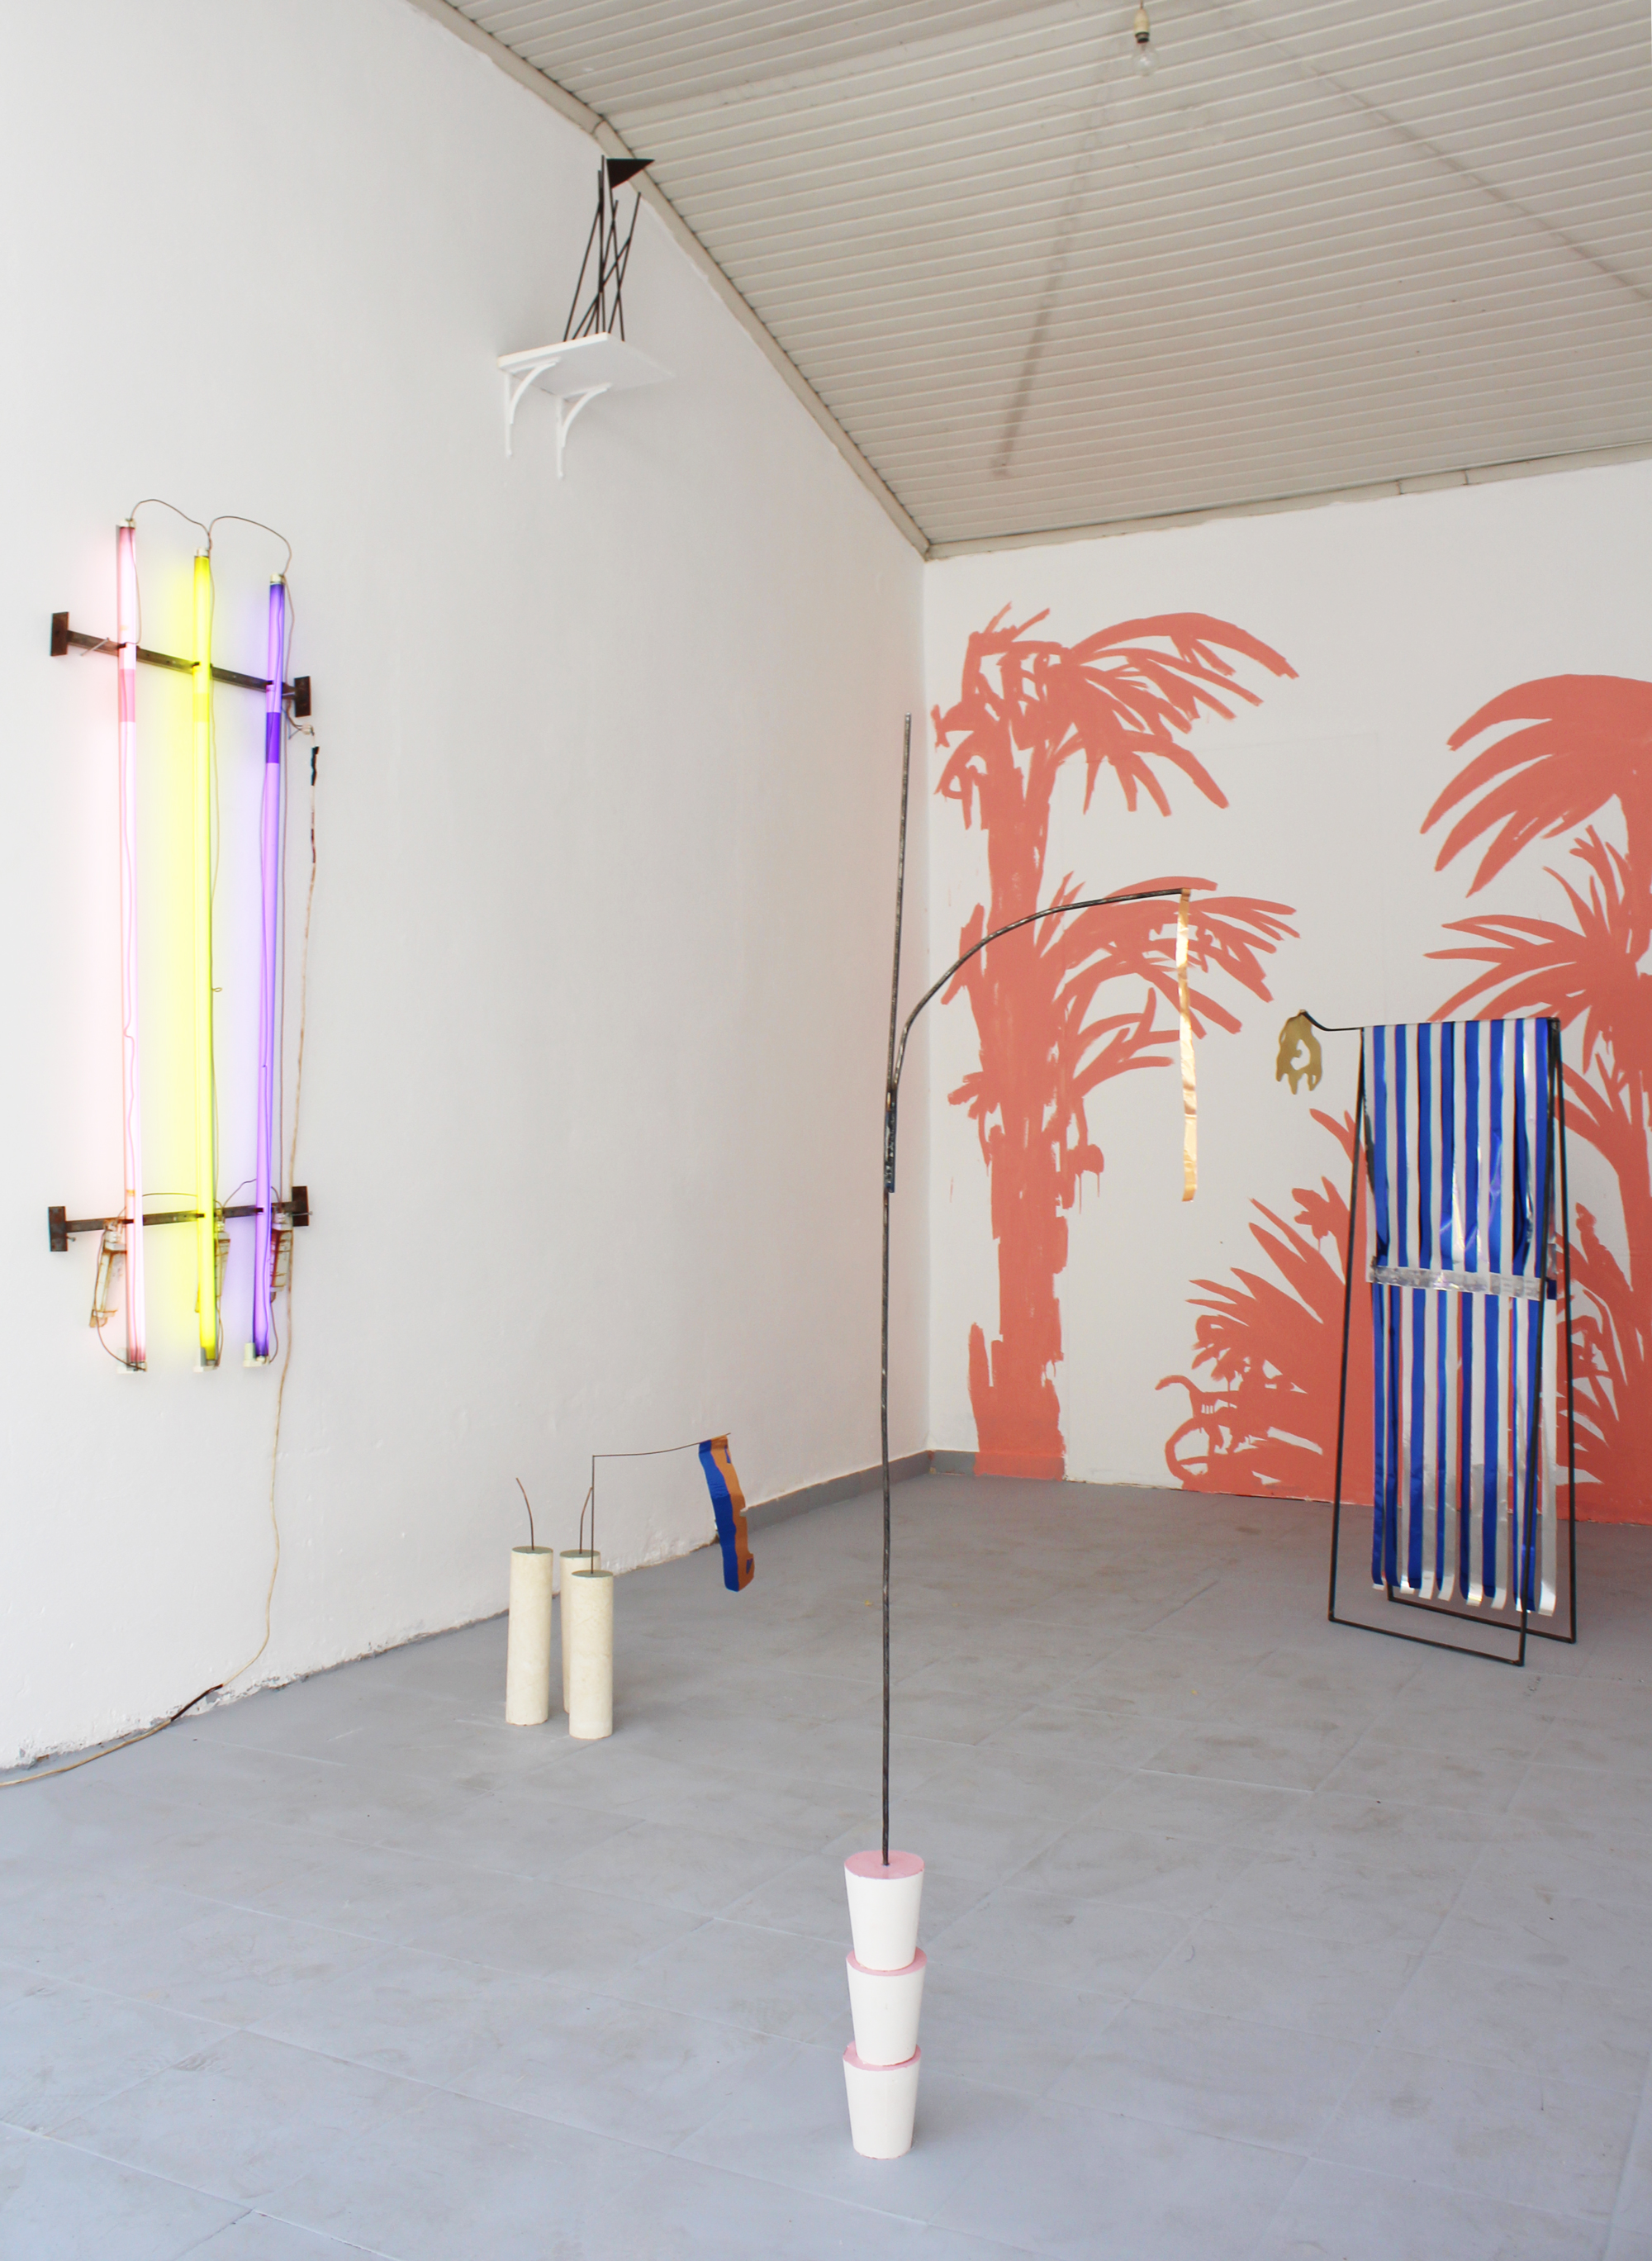 Yorgos Maraziotis,  A Still Life (The Evening of 17th October 2037) , 2018, Wood, plaster, steel, acrylic paint, neon lights, Dimensions variable